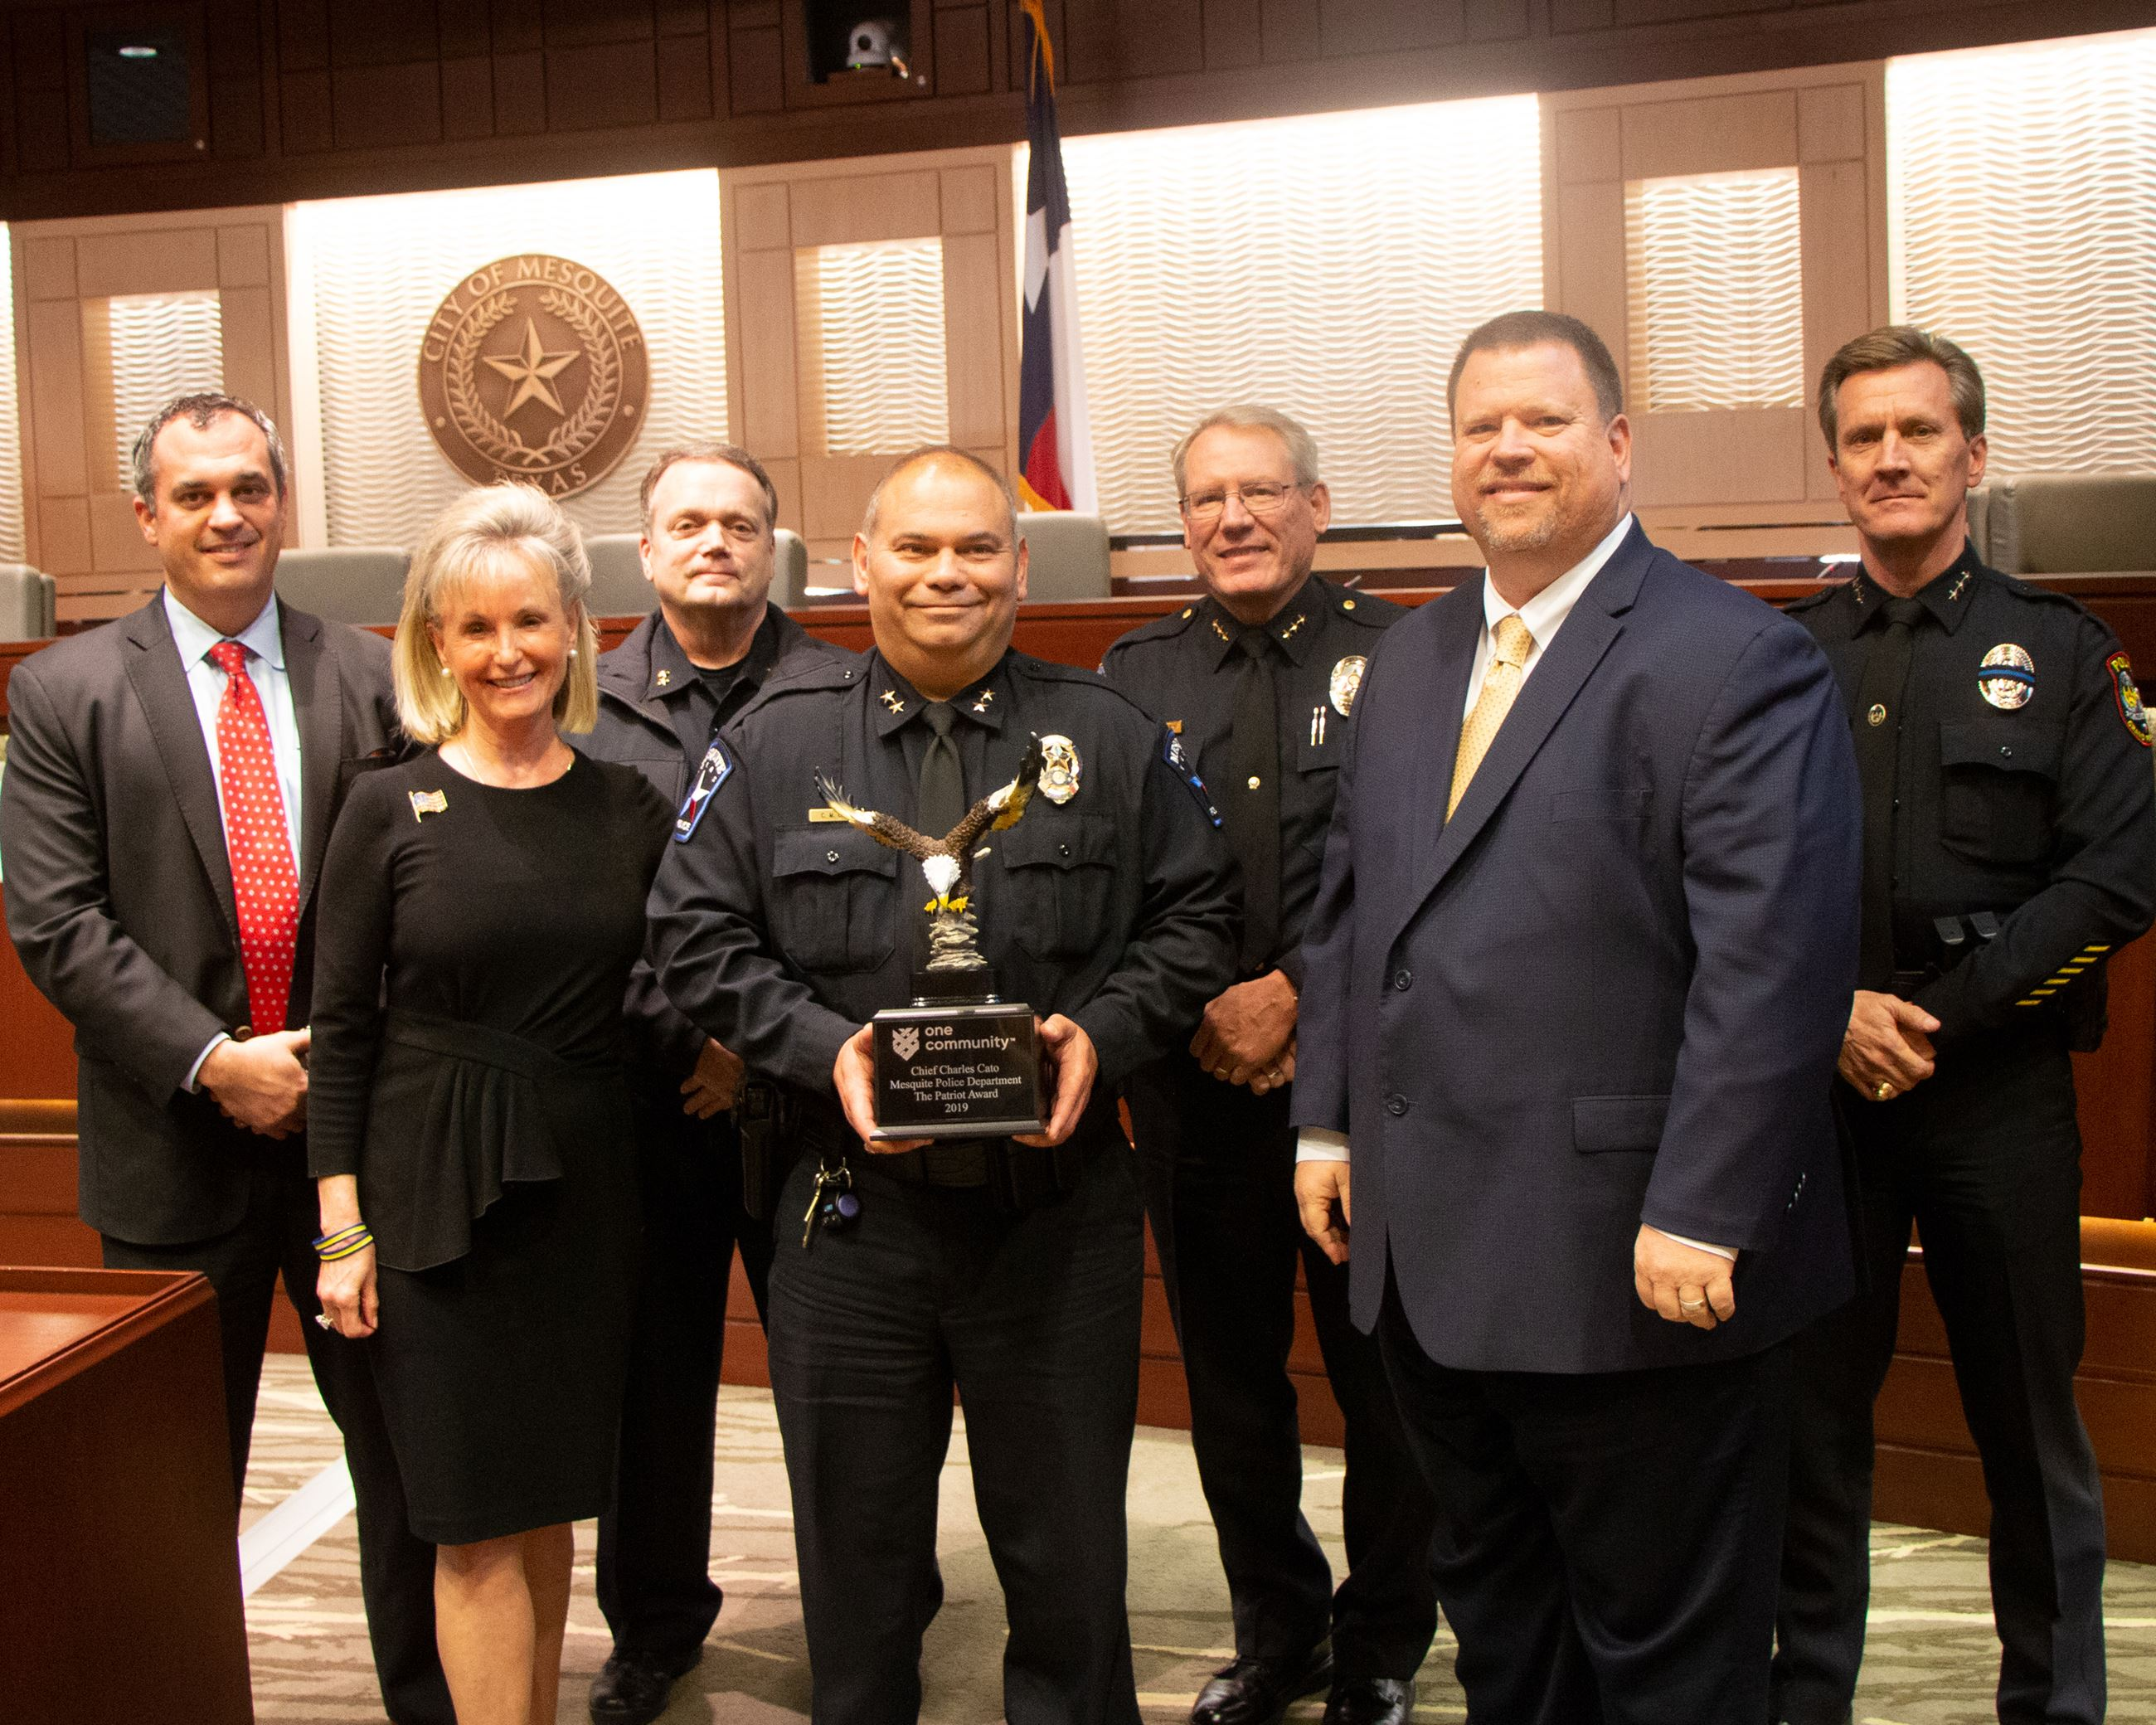 Police Chief Charles Cato receives 2019 One Community Award - Mesquite TX